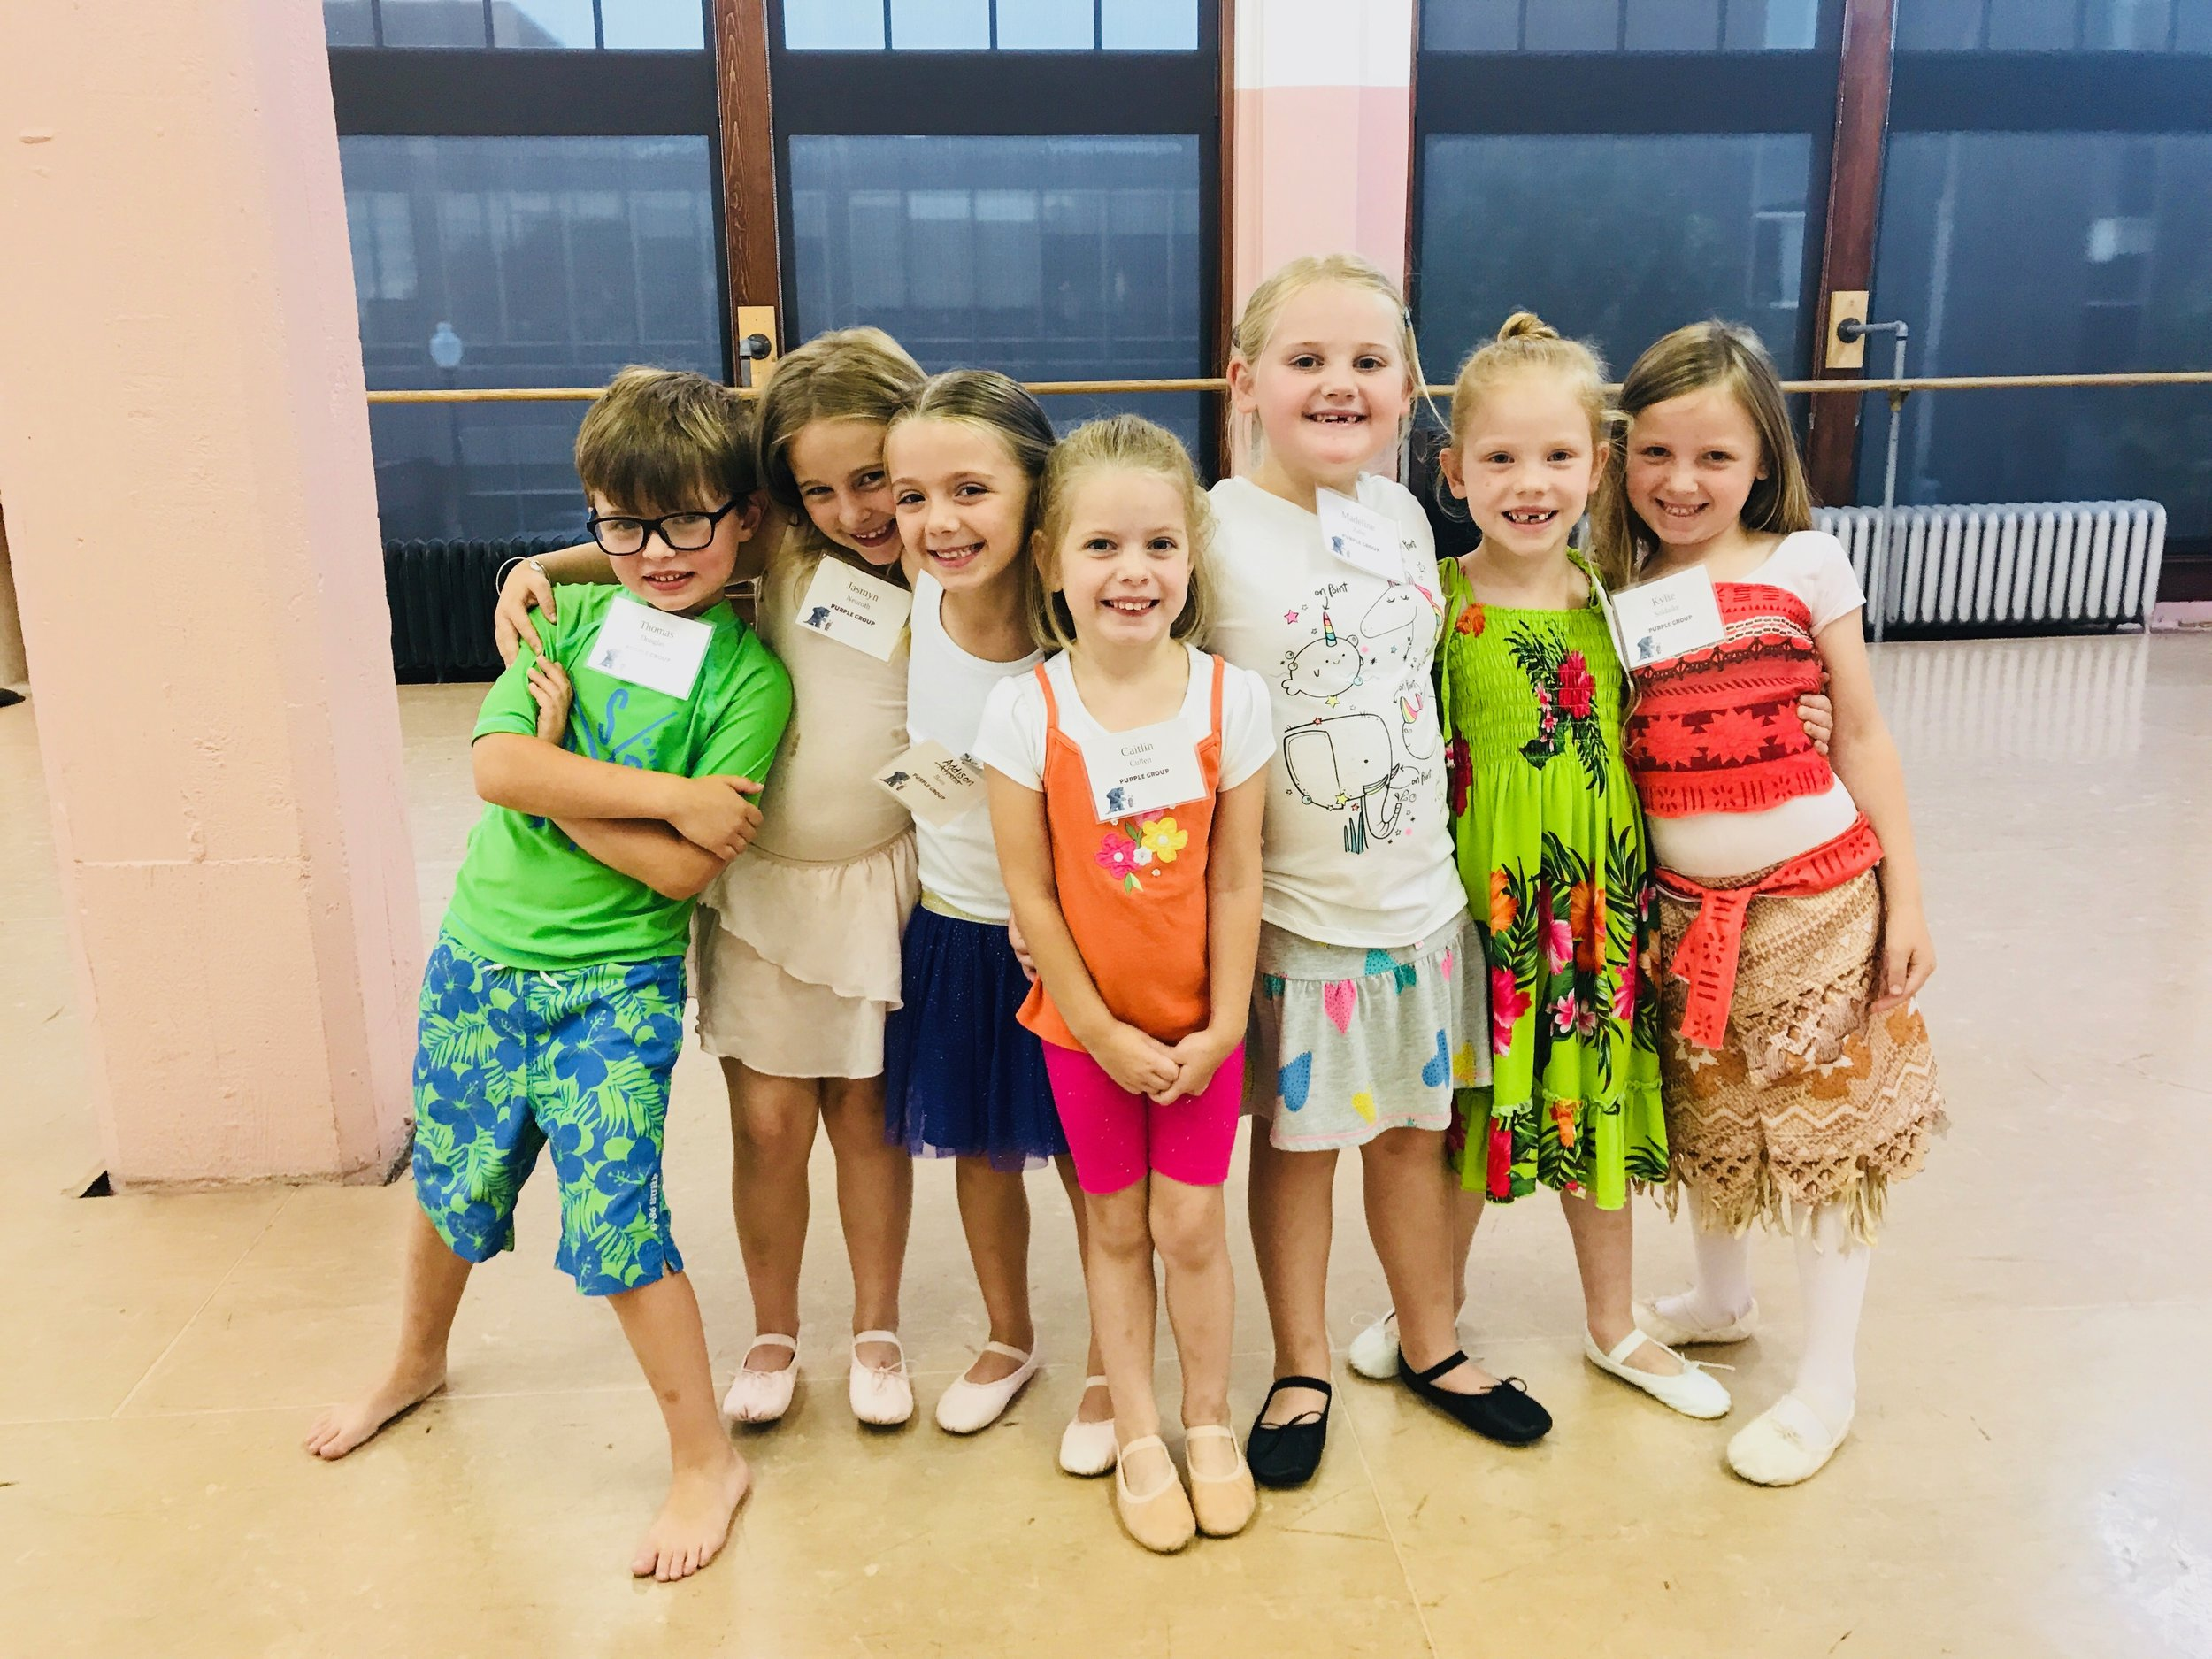 Children's Summer Dance Camp #3 - Date: Coming SoonCost: Coming SoonAges: Coming SoonDetails & Information